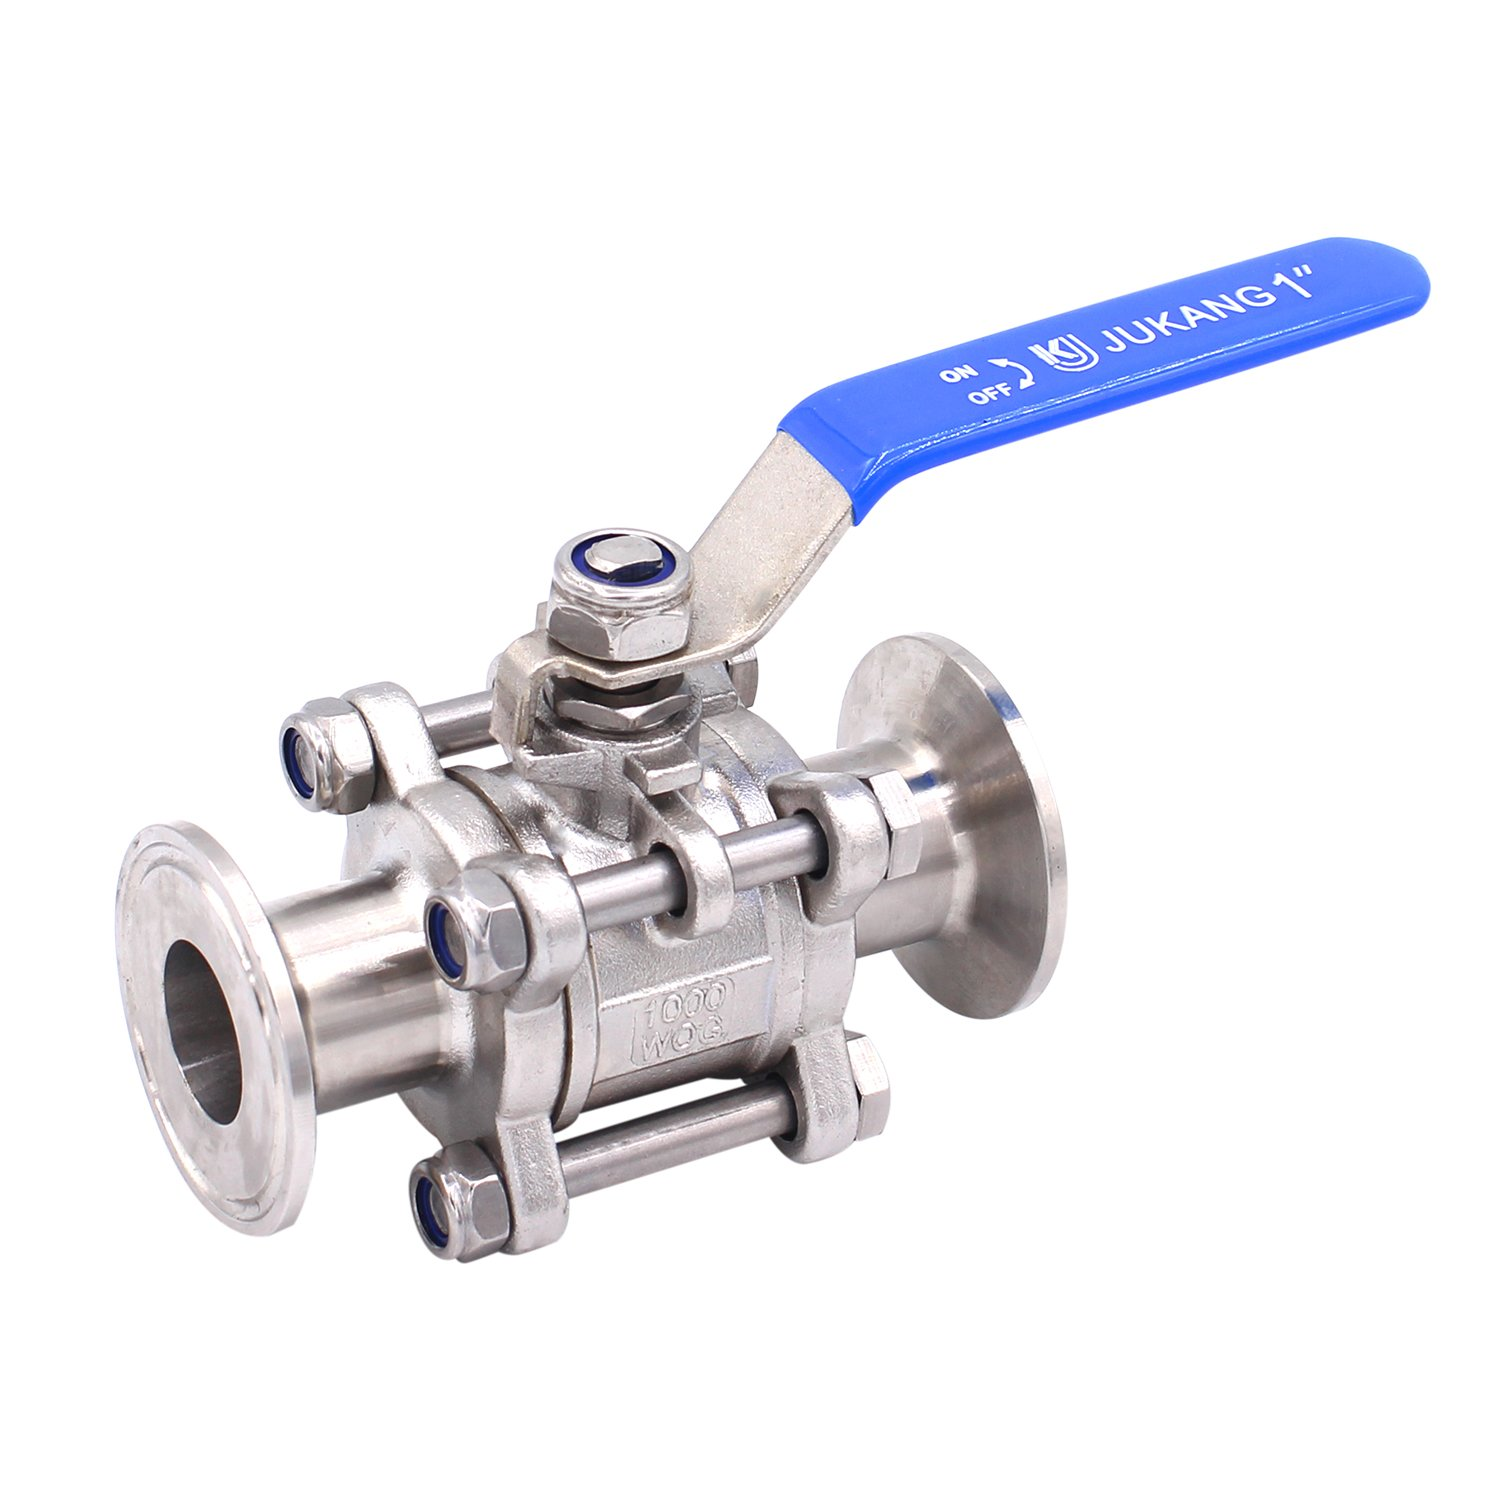 Dernord 1''Sanitary Ball Valve Fits 1.5'' Tri-Clamp Clover Stainless Steel 304, PTFE Lined, Two Way & Three Piece (1 Inch Tube OD Quick Clamp)